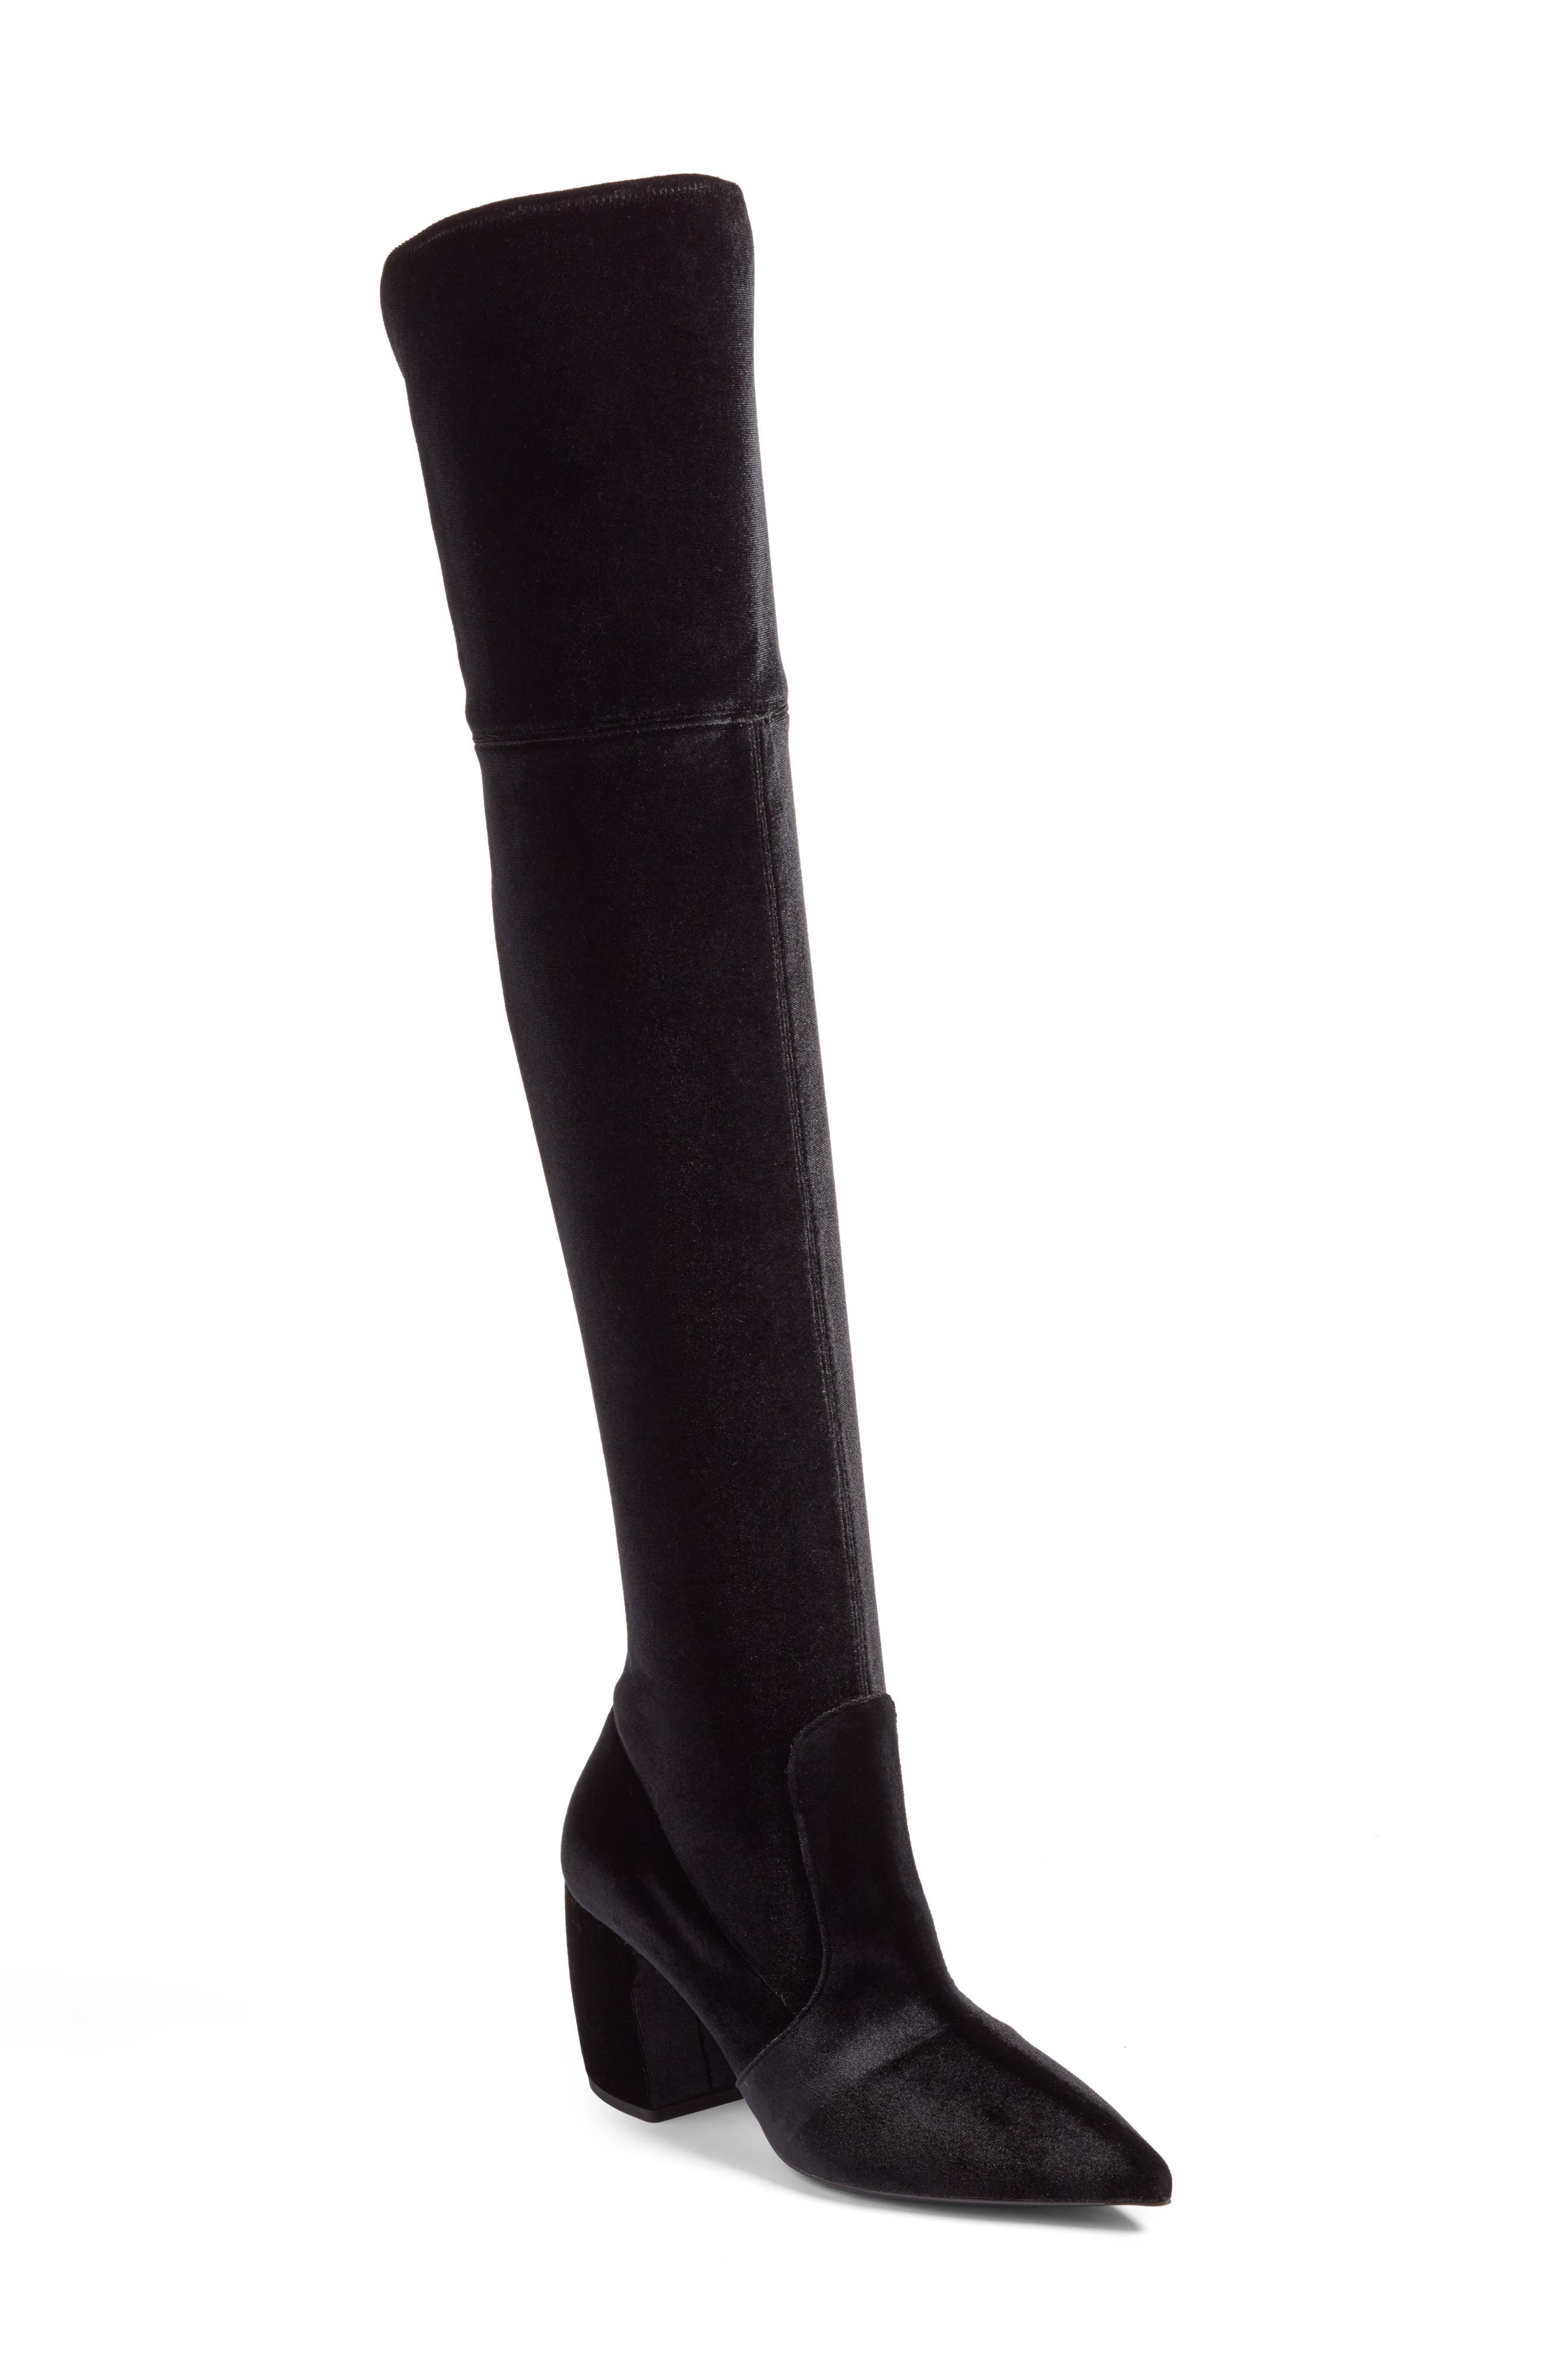 Over the Knee Boot,                         Main,                         color,